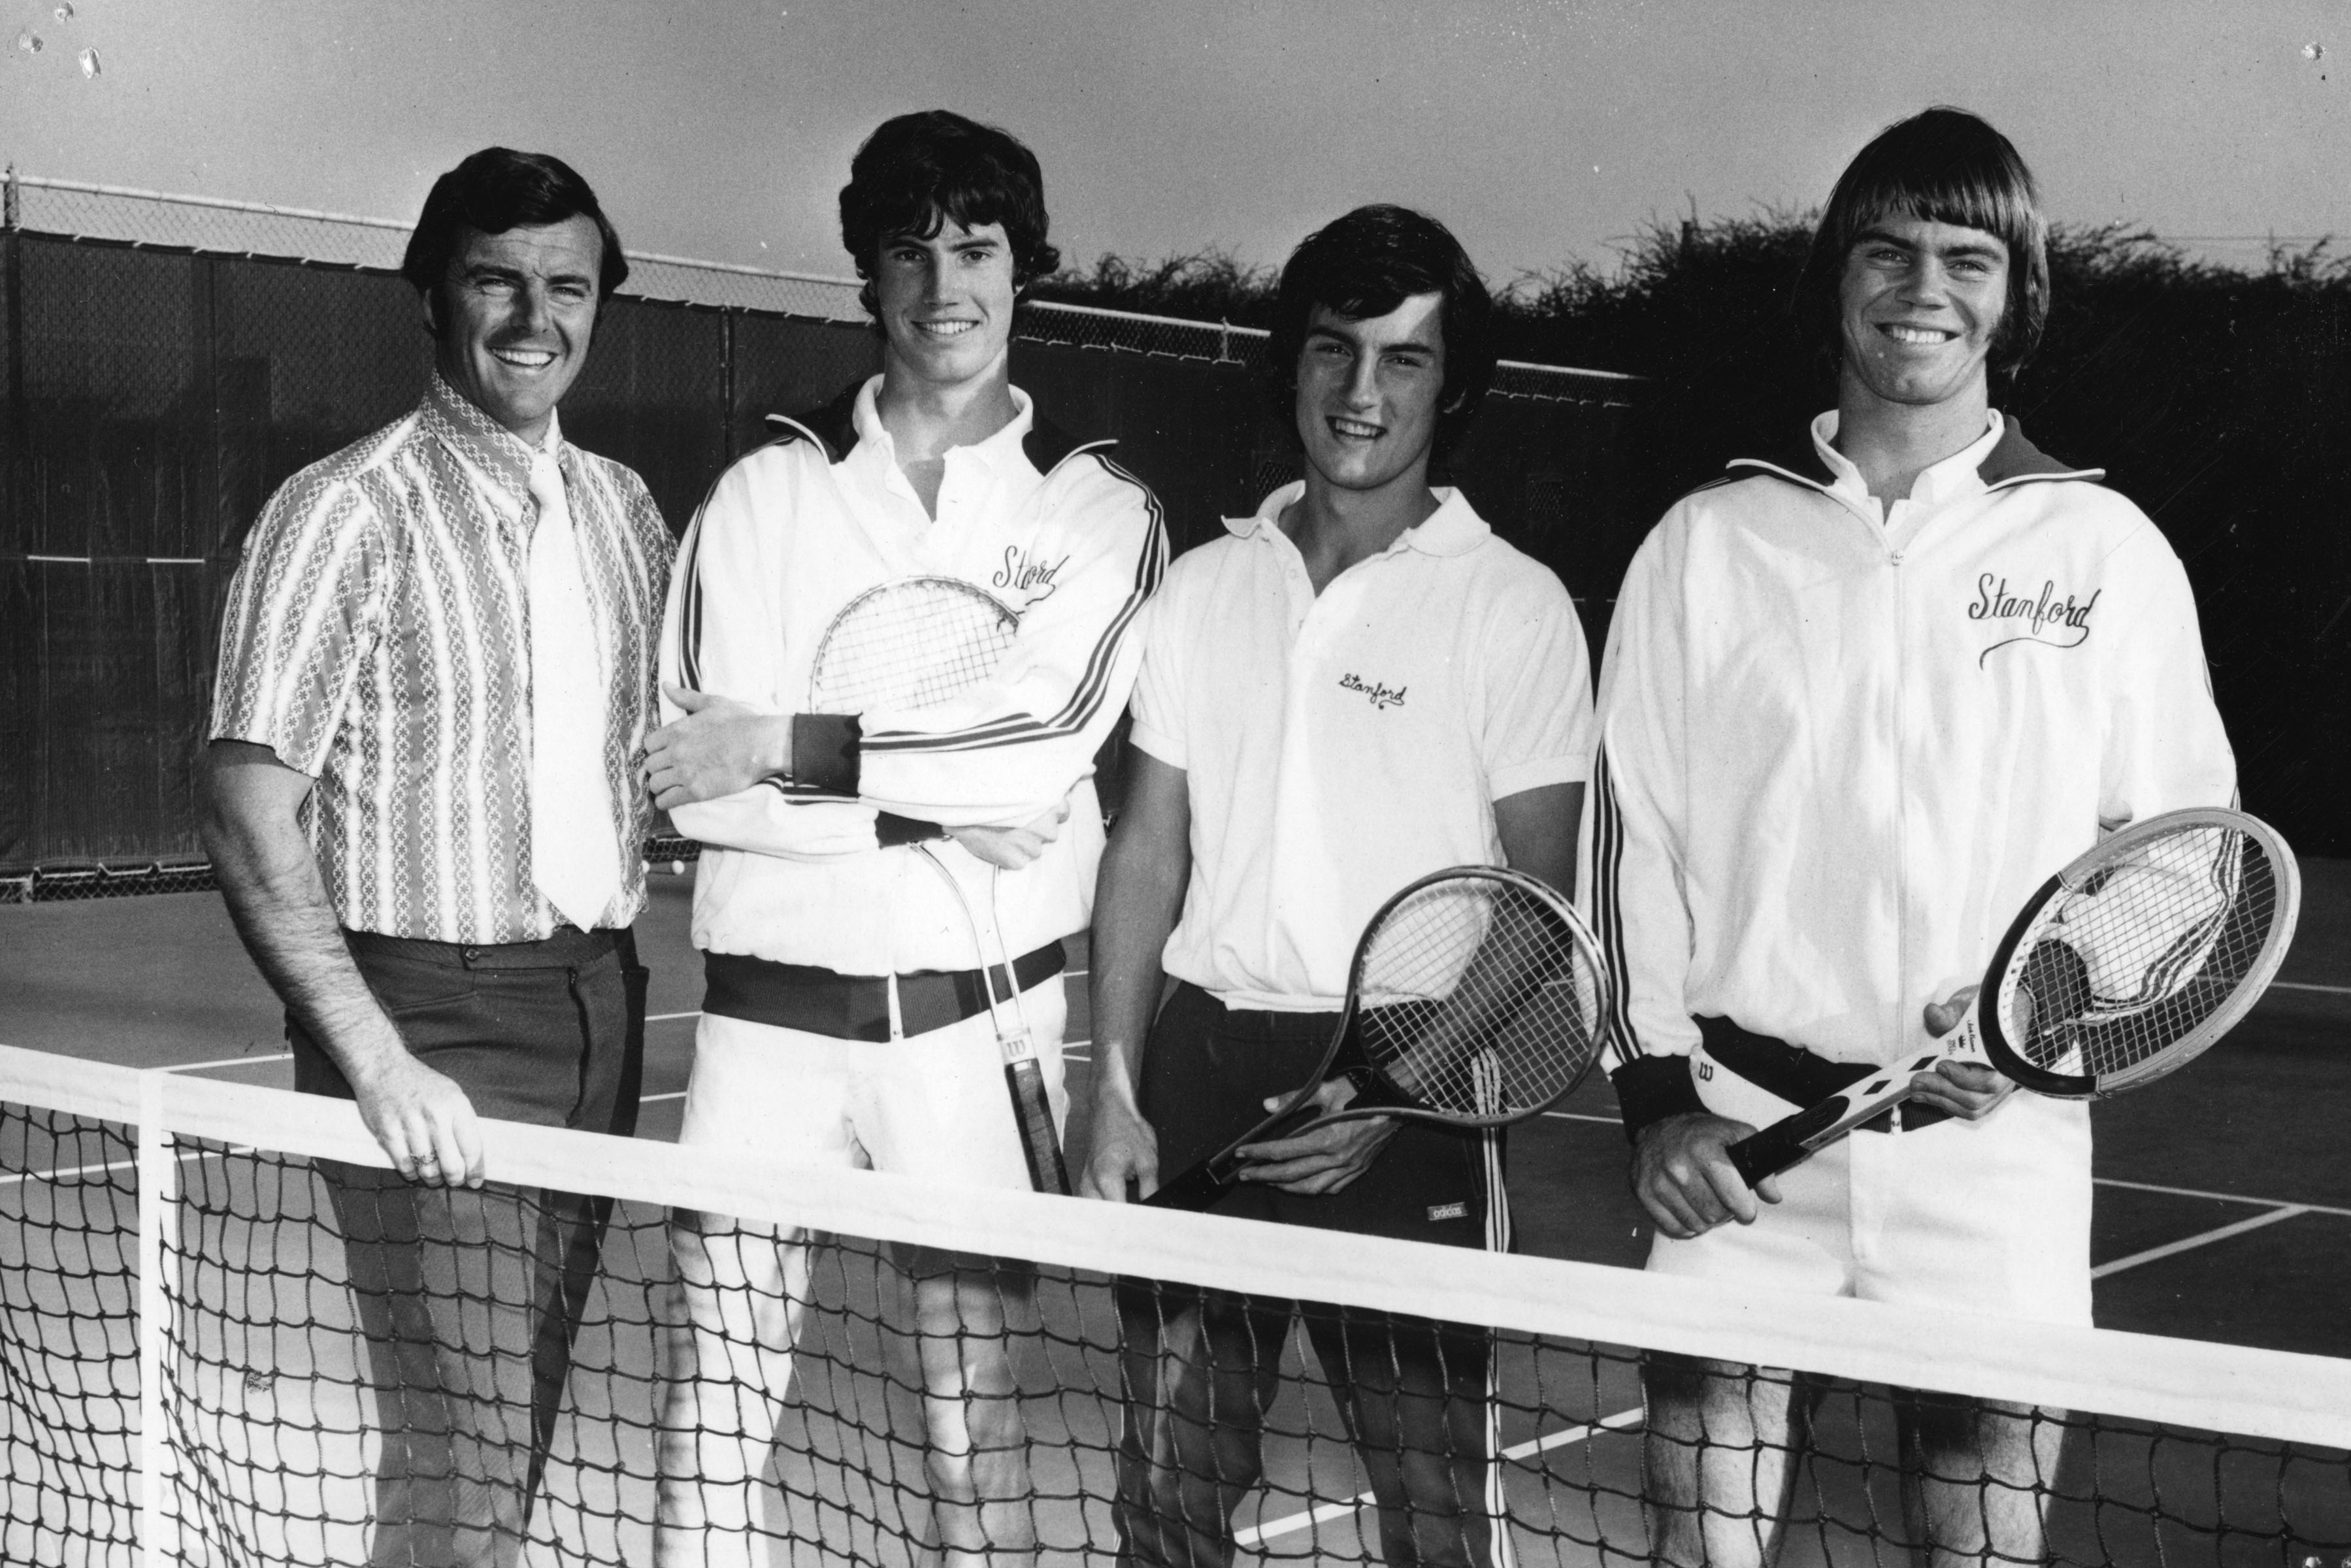 Dick Gould and 1973 Stanford tennis players